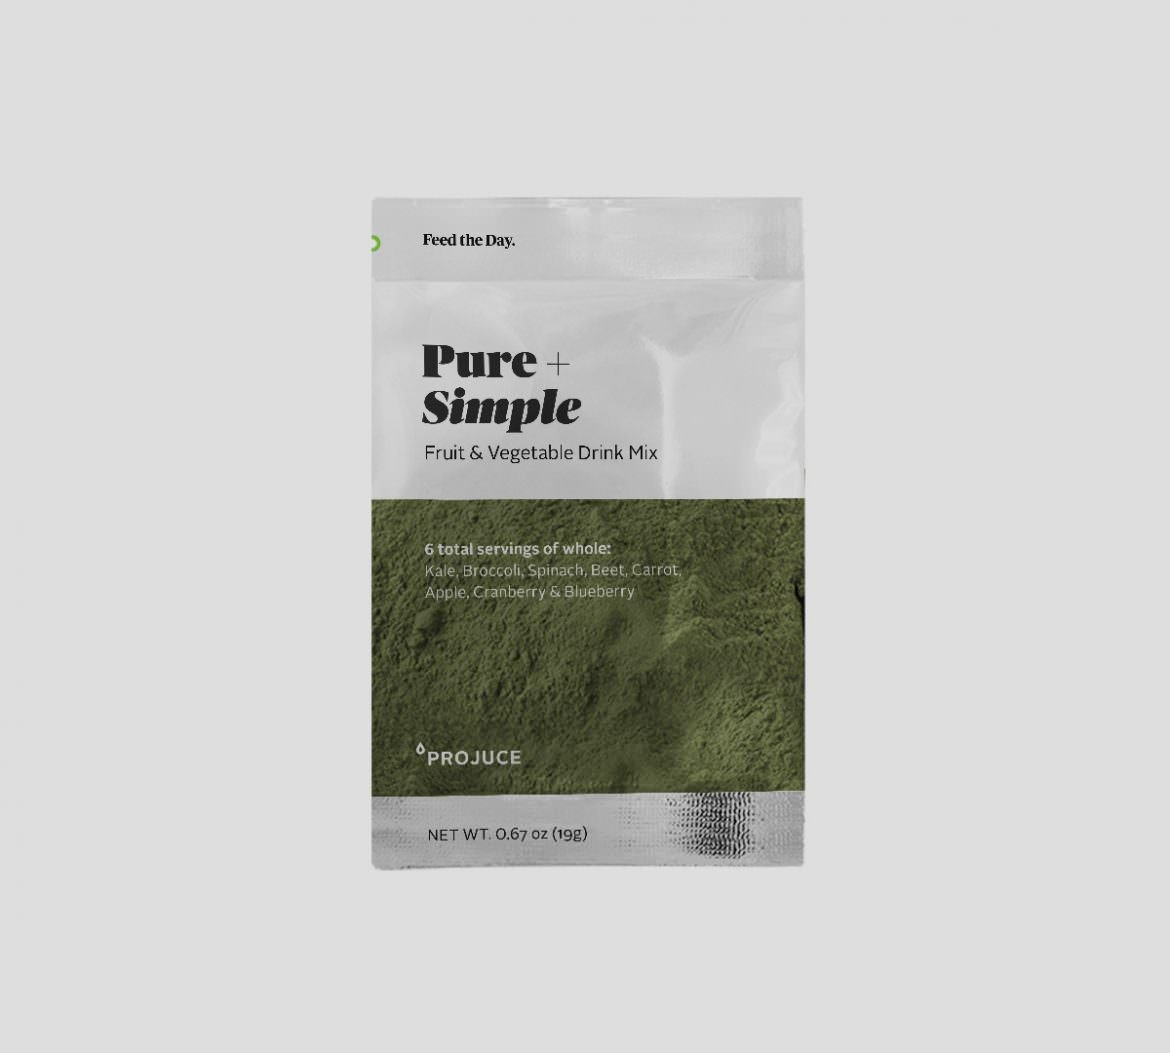 Pure + Simple Juice Powder — 6 servings of whole, raw and organic fruits & vegetables — Kale, Broccoli, Spinach, Beet, Carrot, Apple, Cranberry and Blueberry blend — 10 pouch pack (19g each)